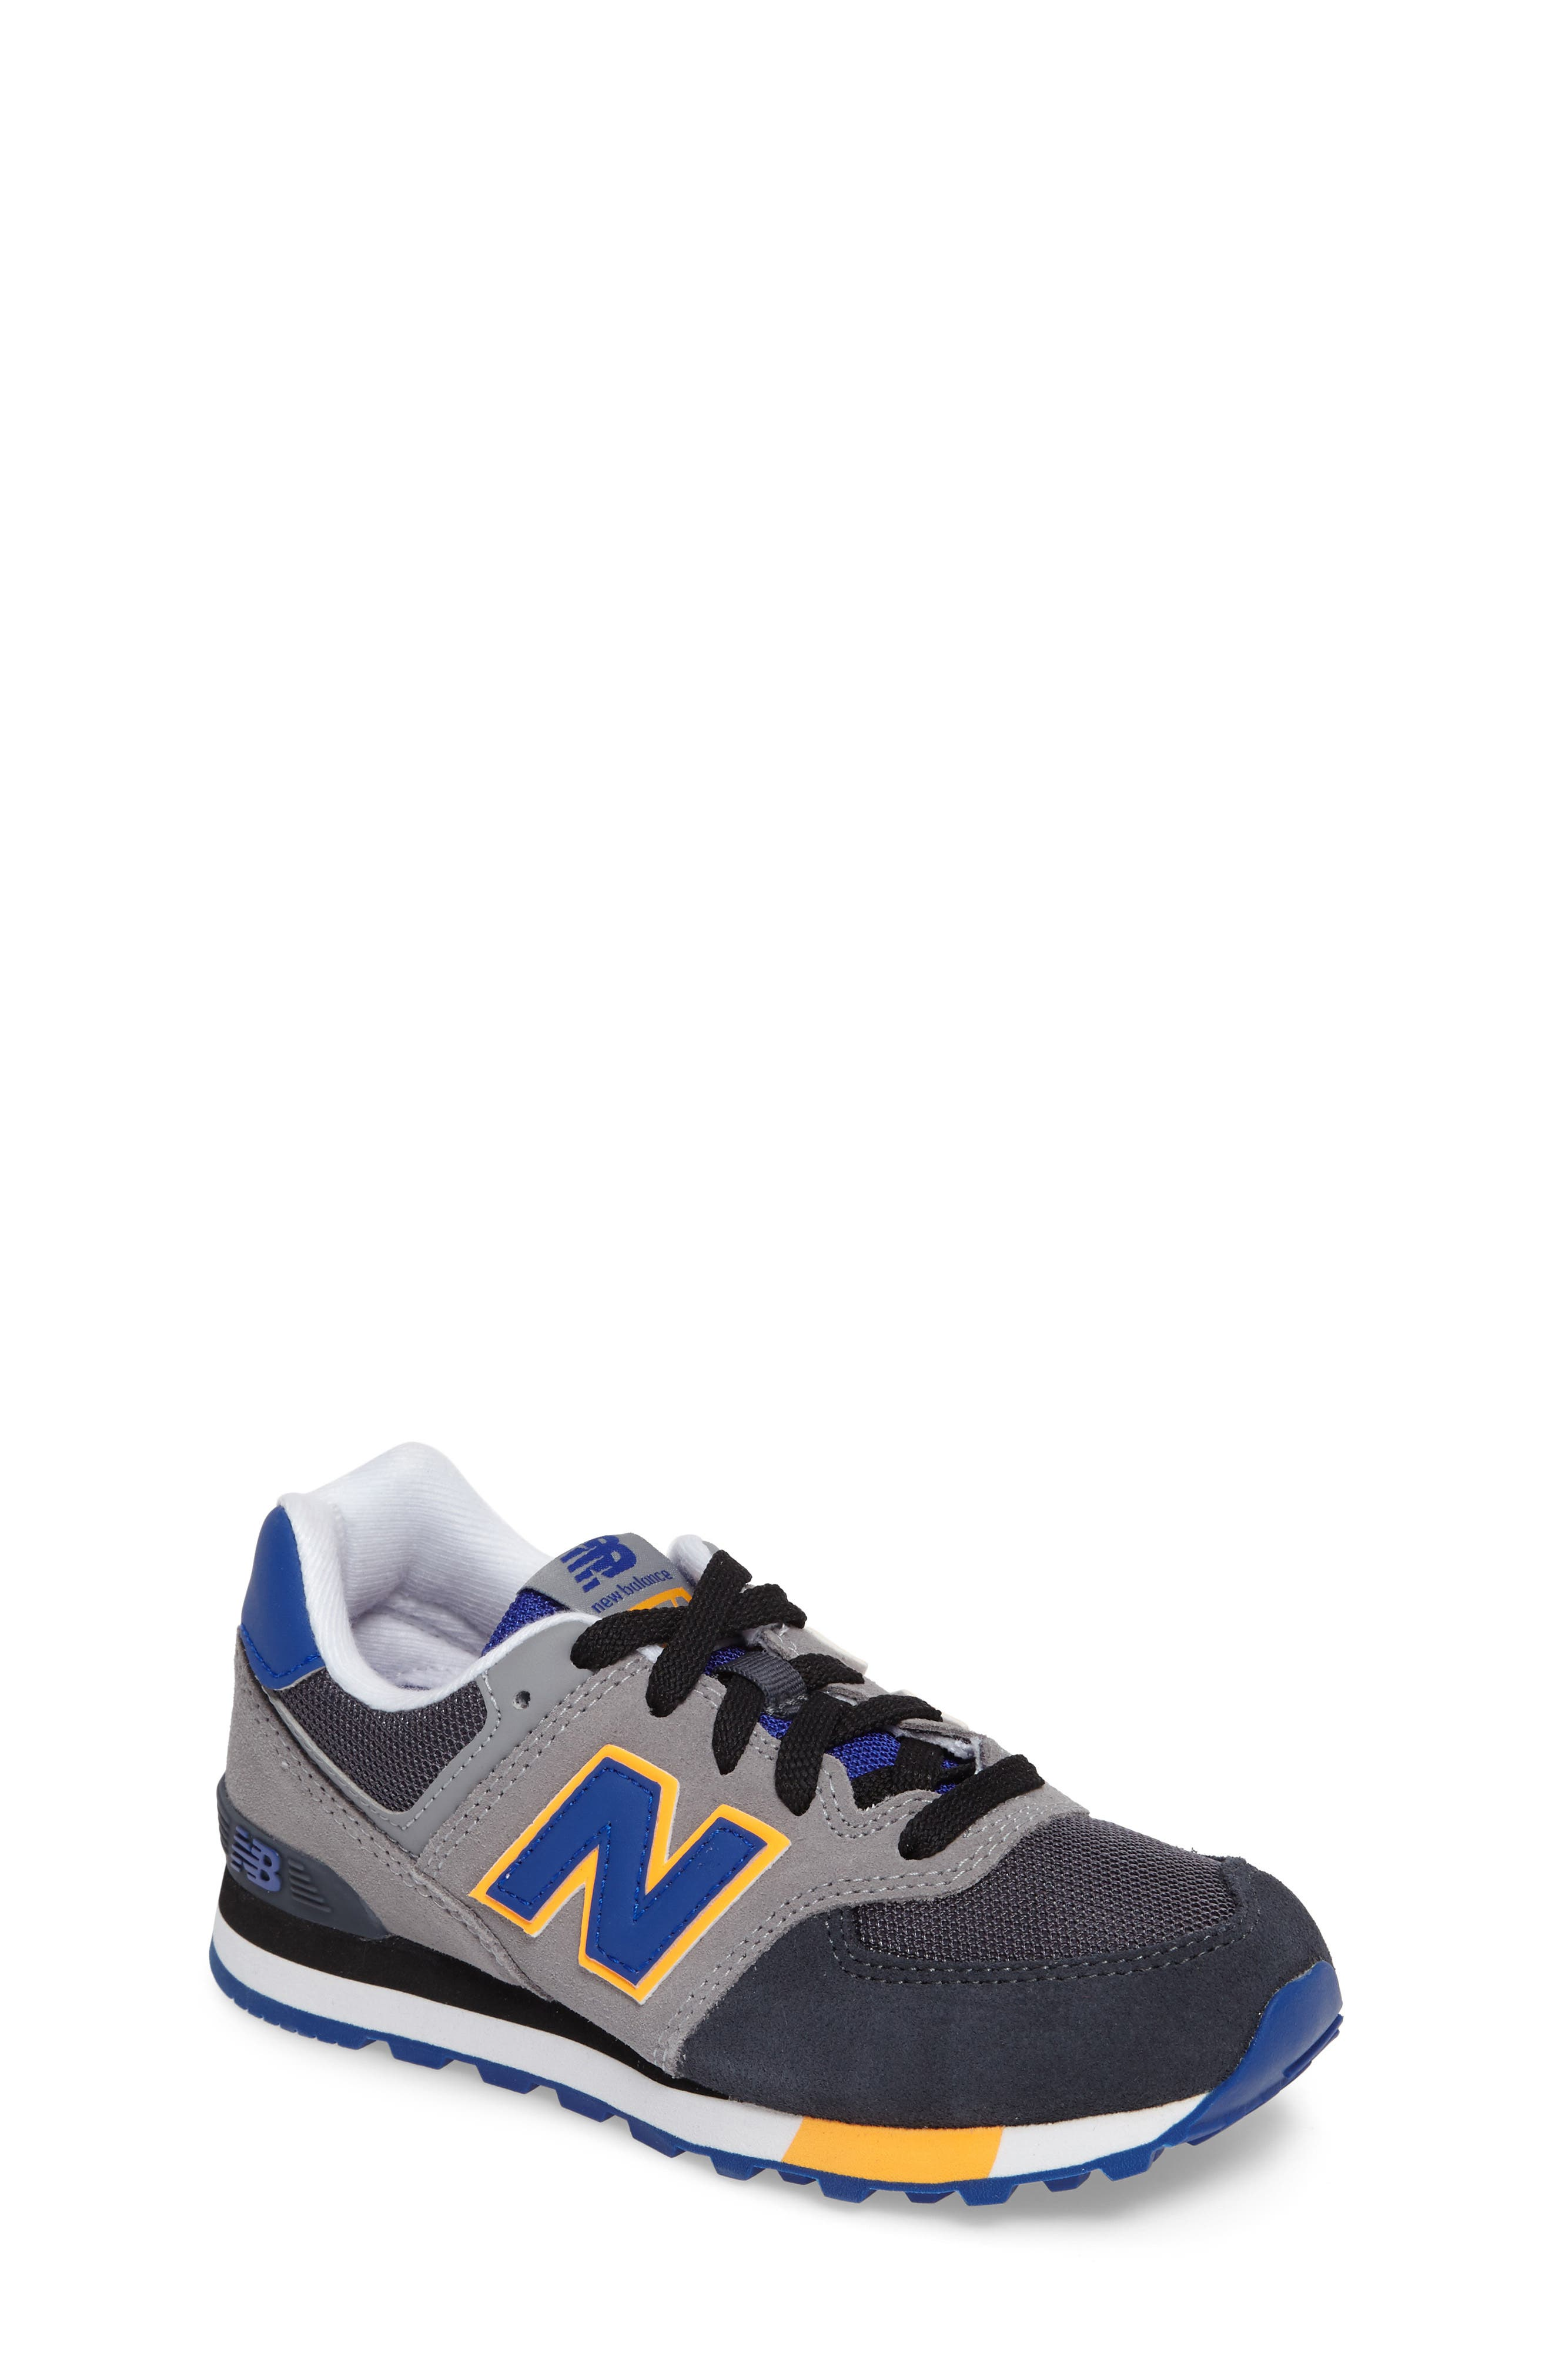 New Balance 574 Cut & Paste Sneaker (Toddler & Little Kid)